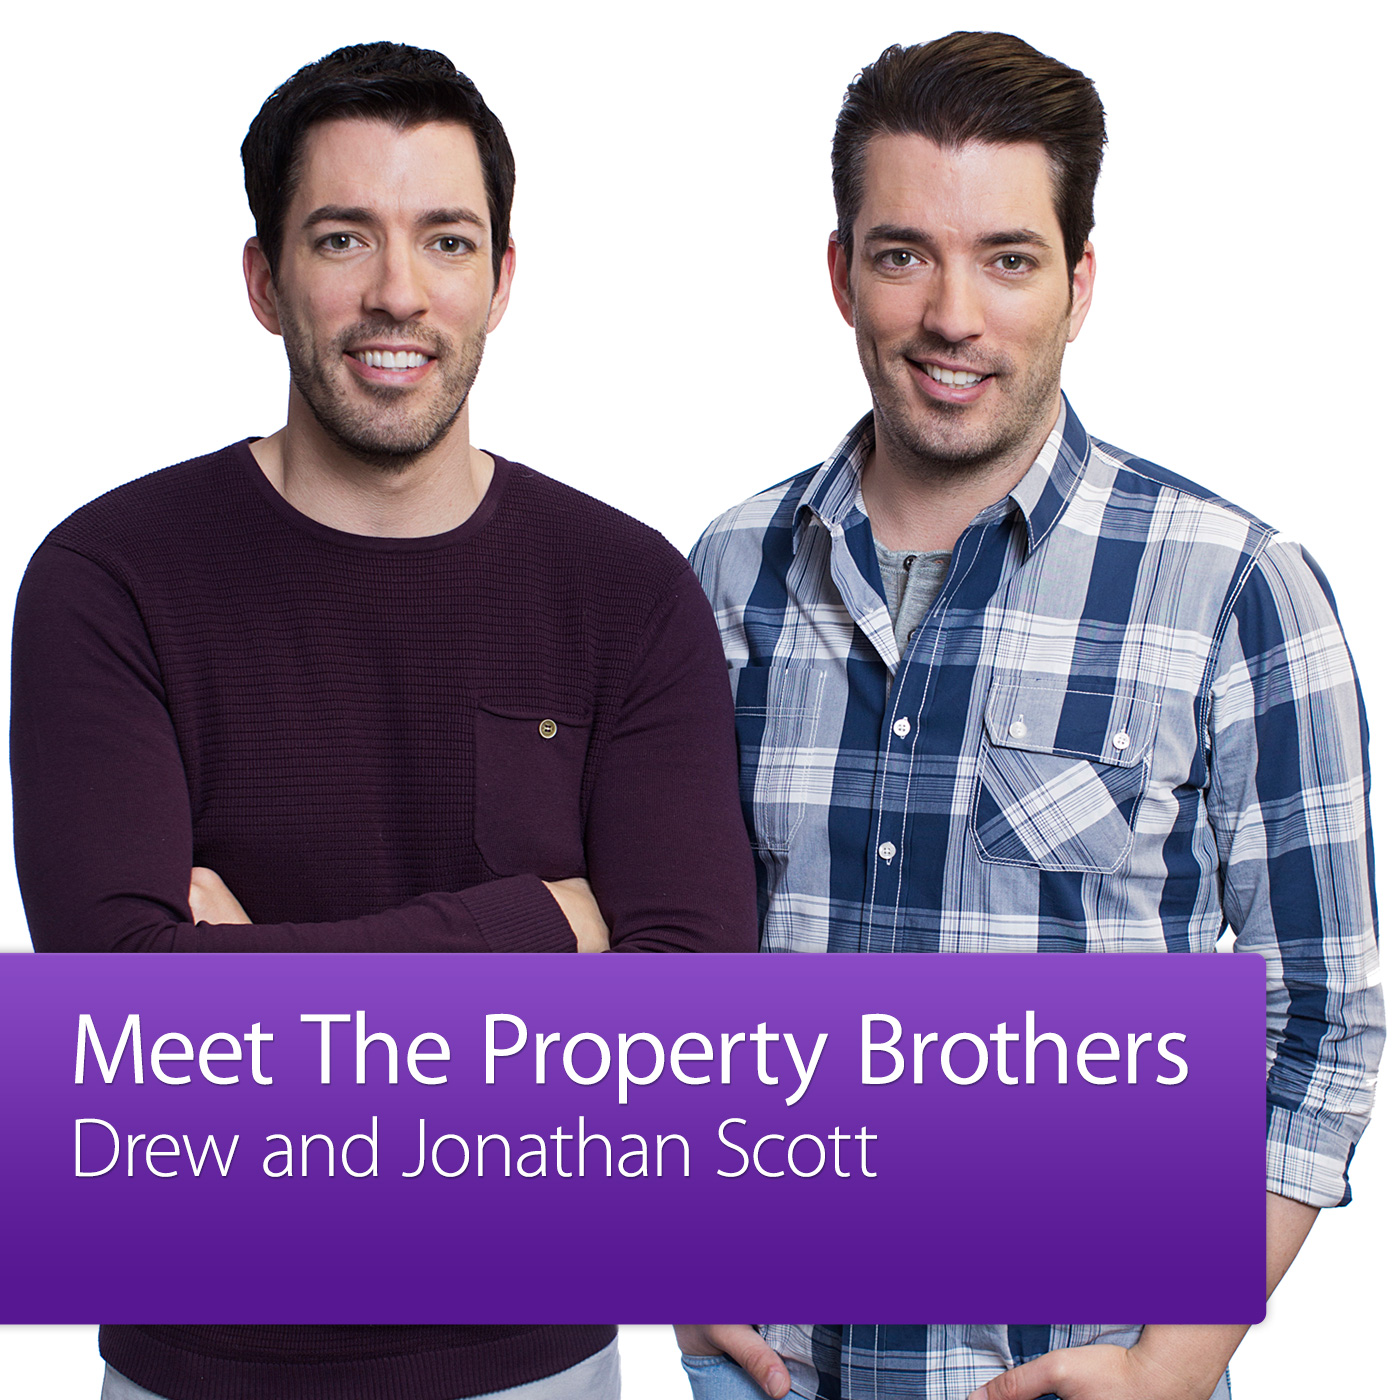 Meet the Property Brothers